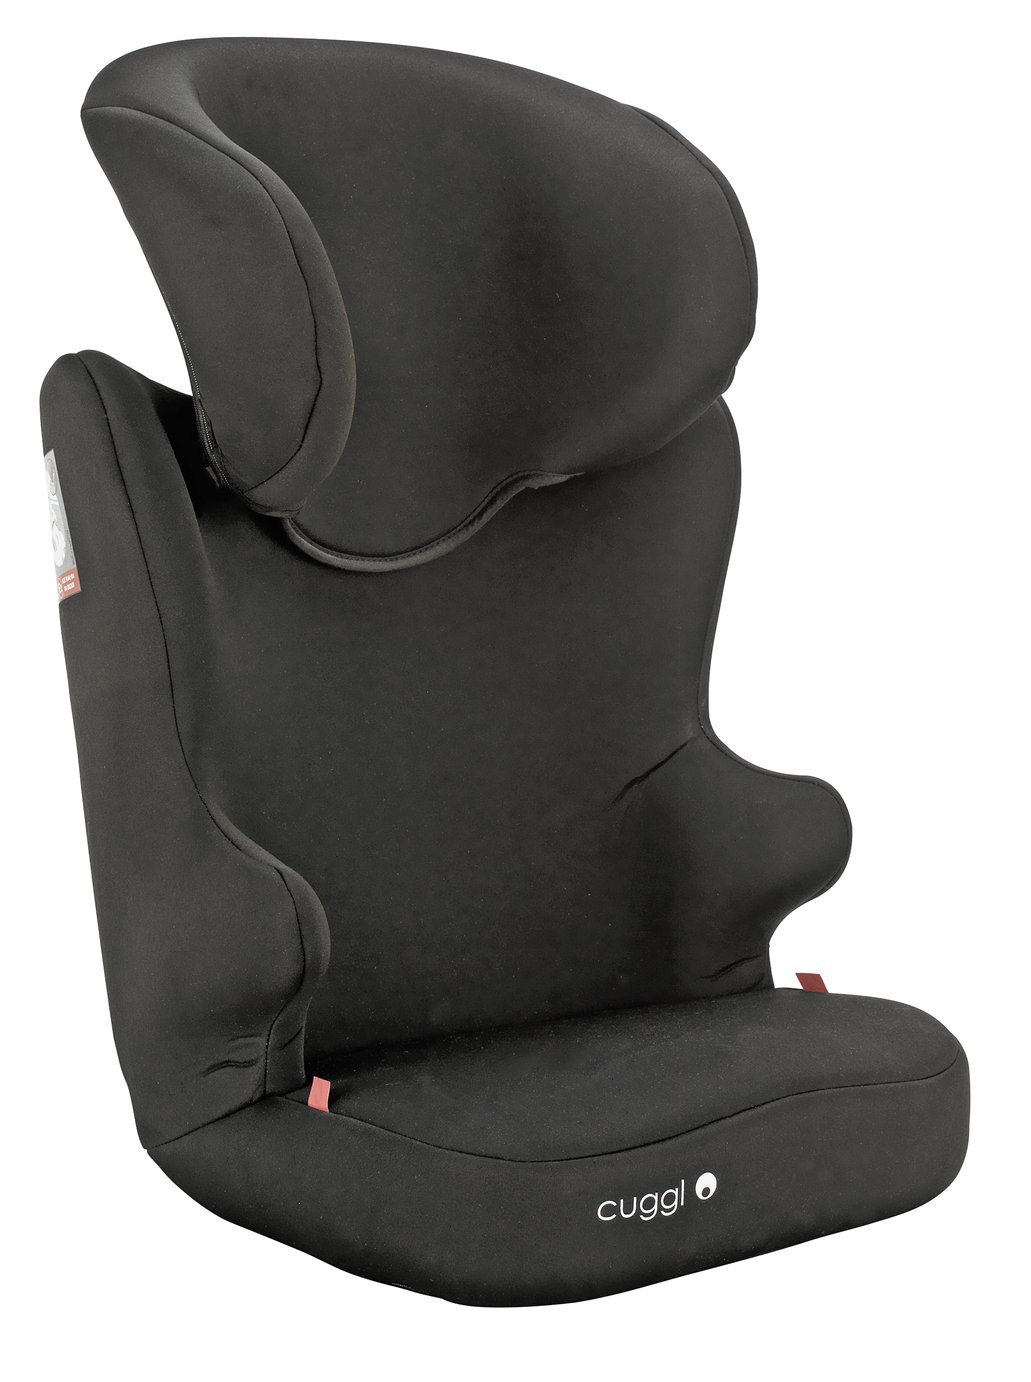 Cuggl Swallow Group 2/3 Car Seat - Black